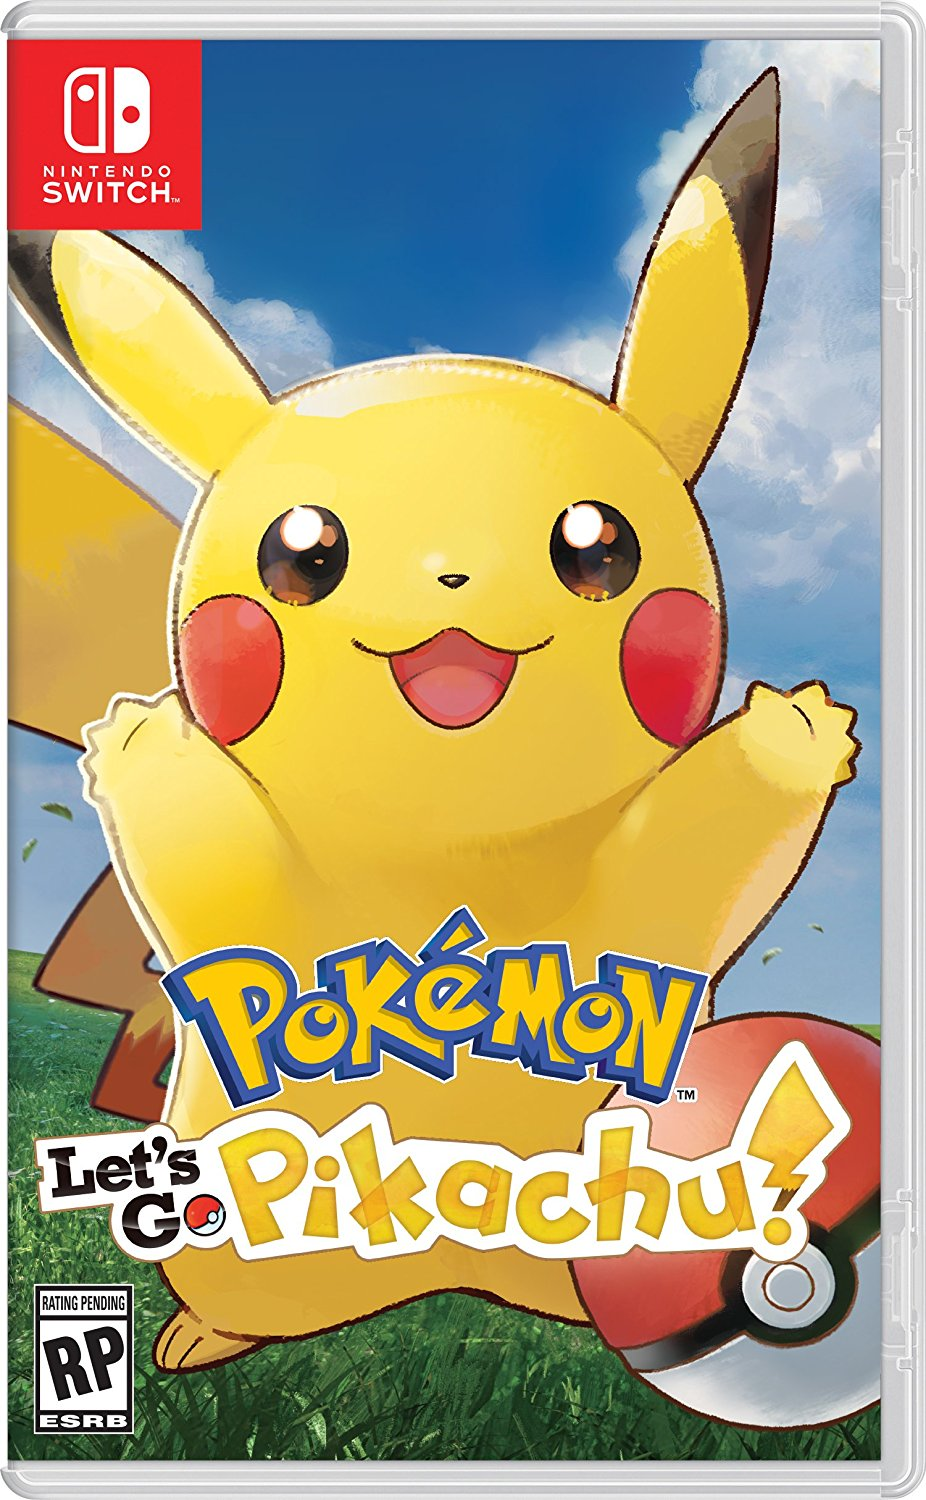 Pokémon Let's Go Pikachu! - Nintendo Switch USA